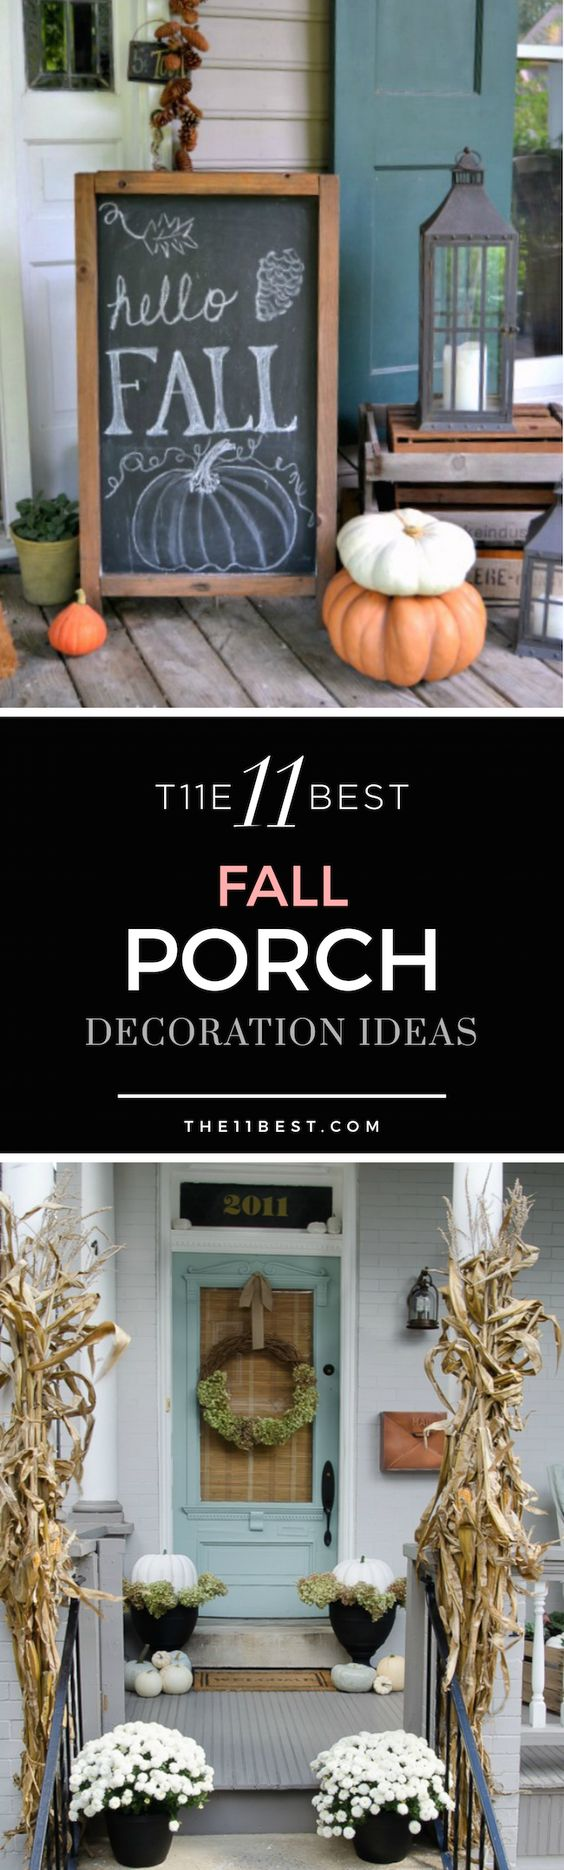 Fall decorations. DIY ideas for the fall.